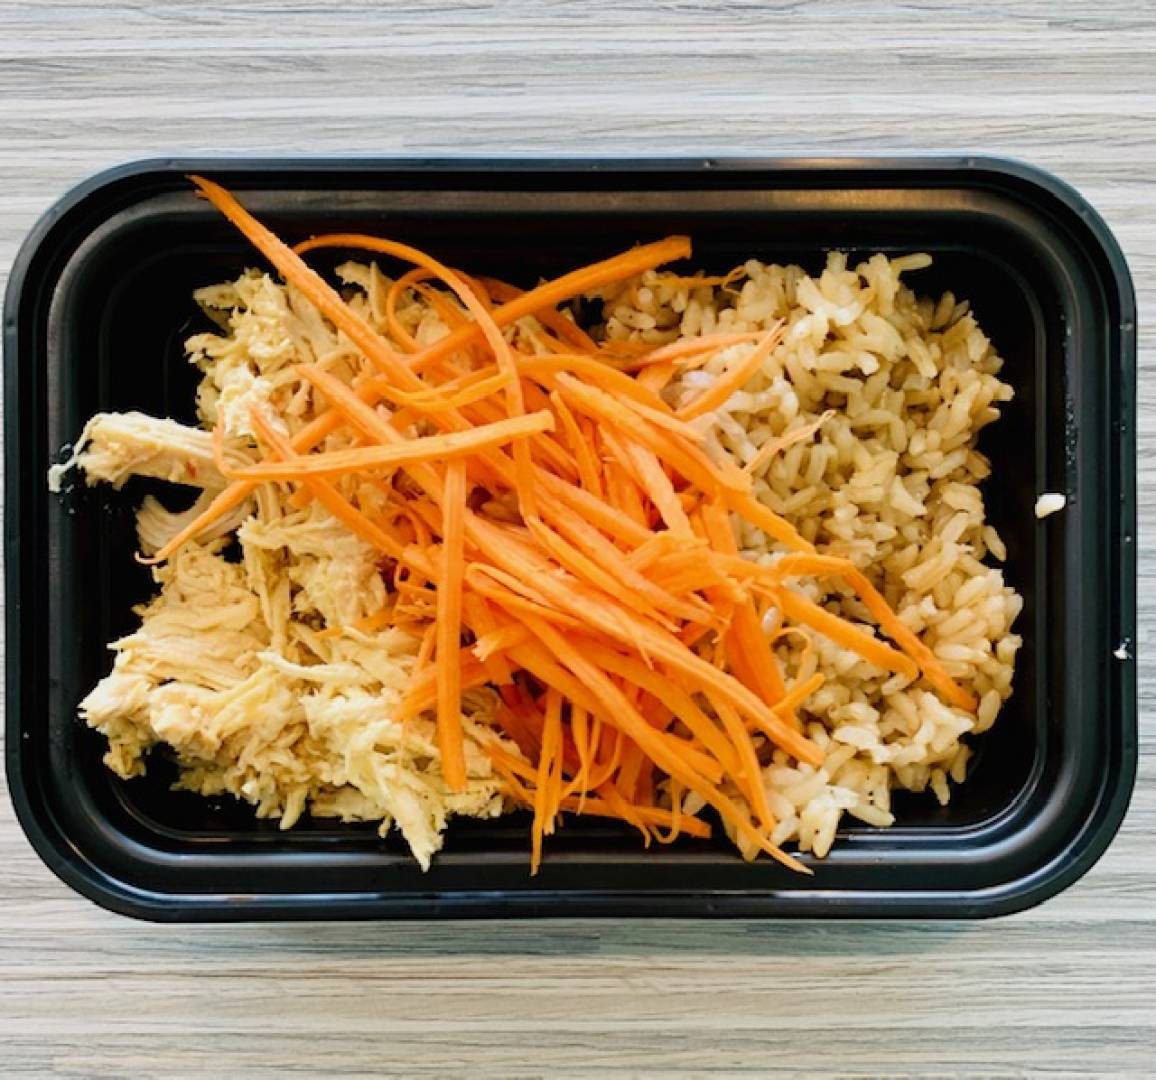 Shredded Chicken, Brown Rice and Carrots